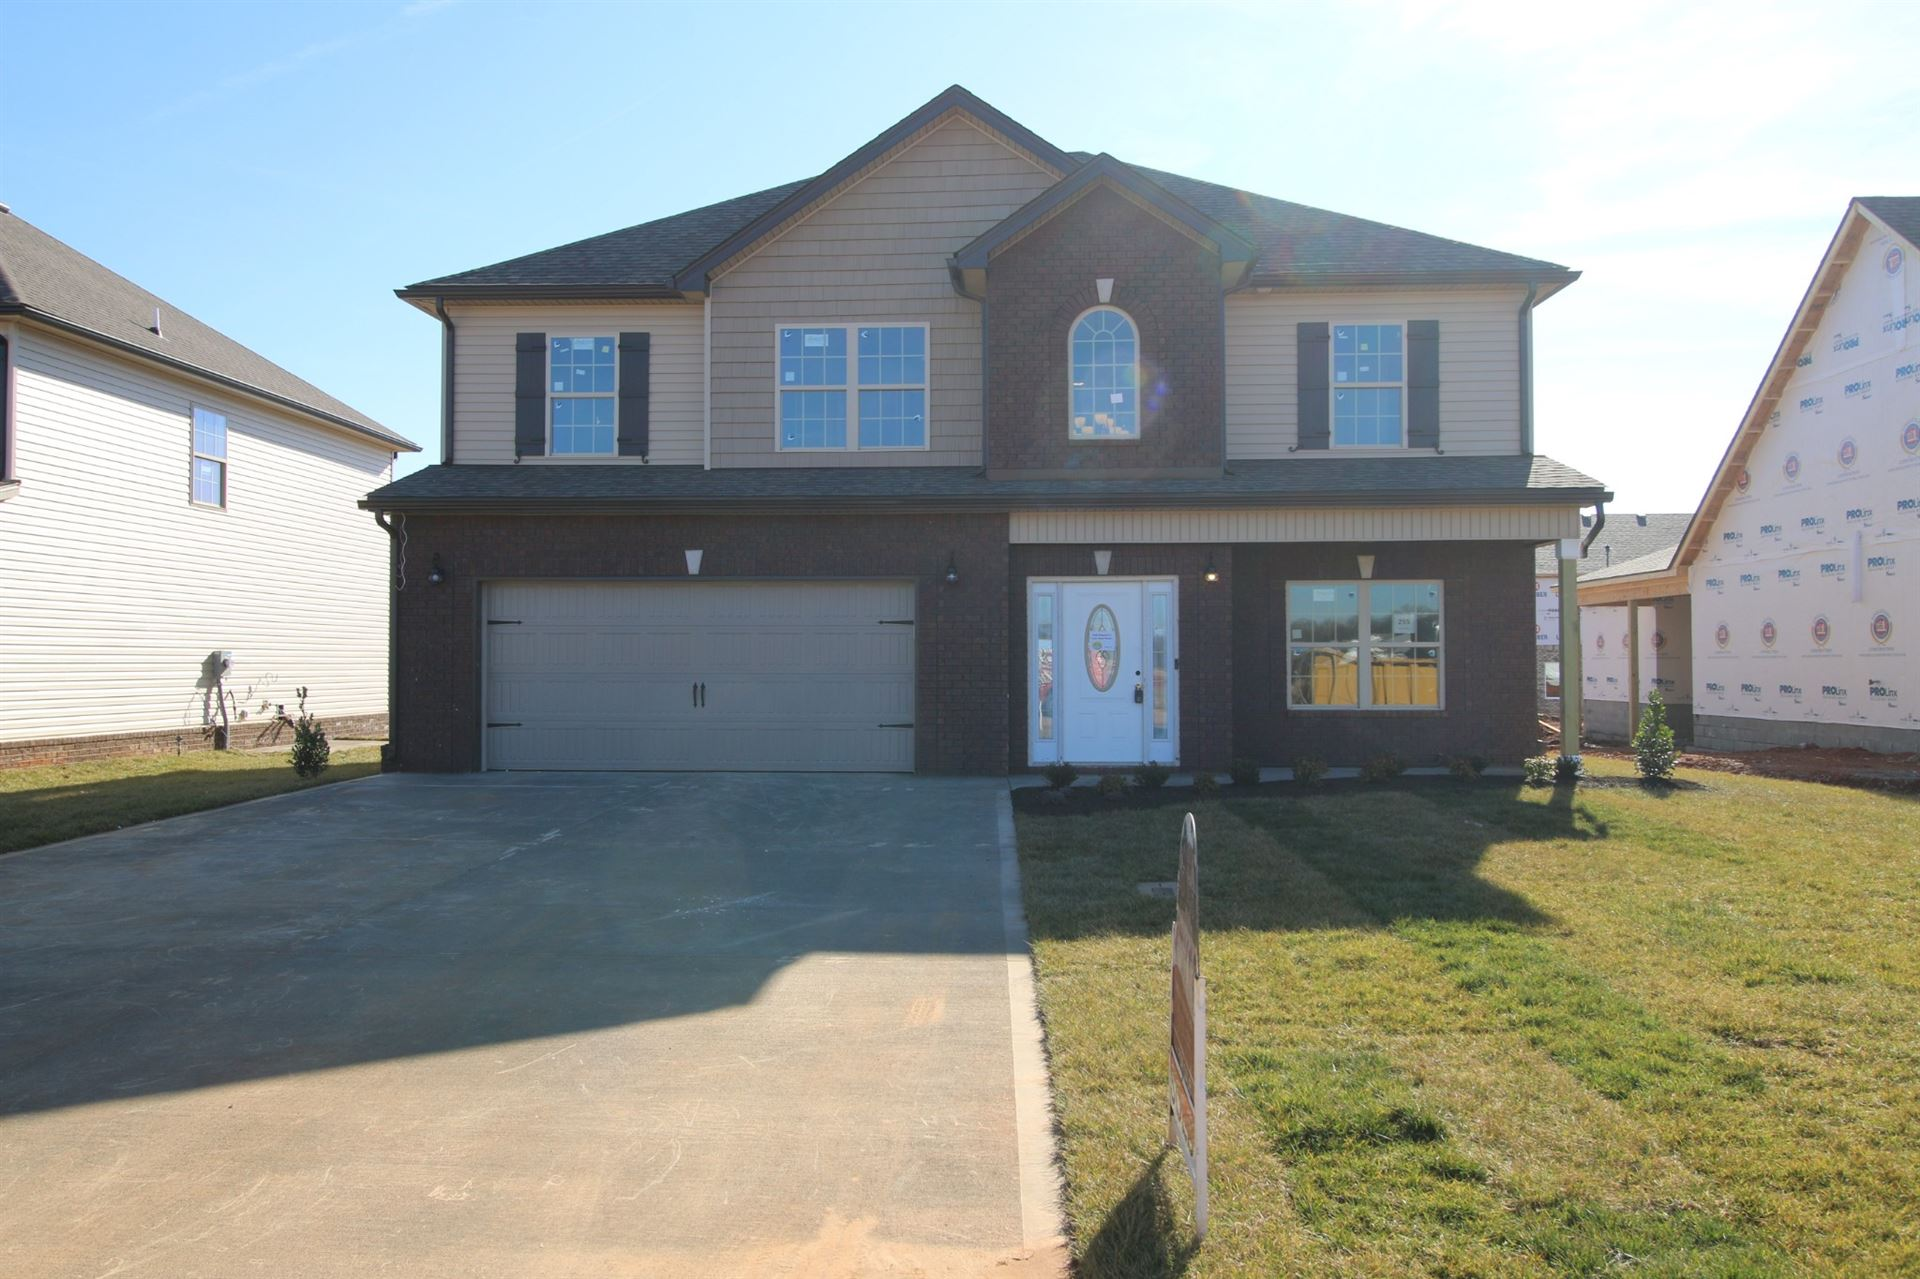 295 Summerfield, Clarksville, TN 37040 - MLS#: 2199590